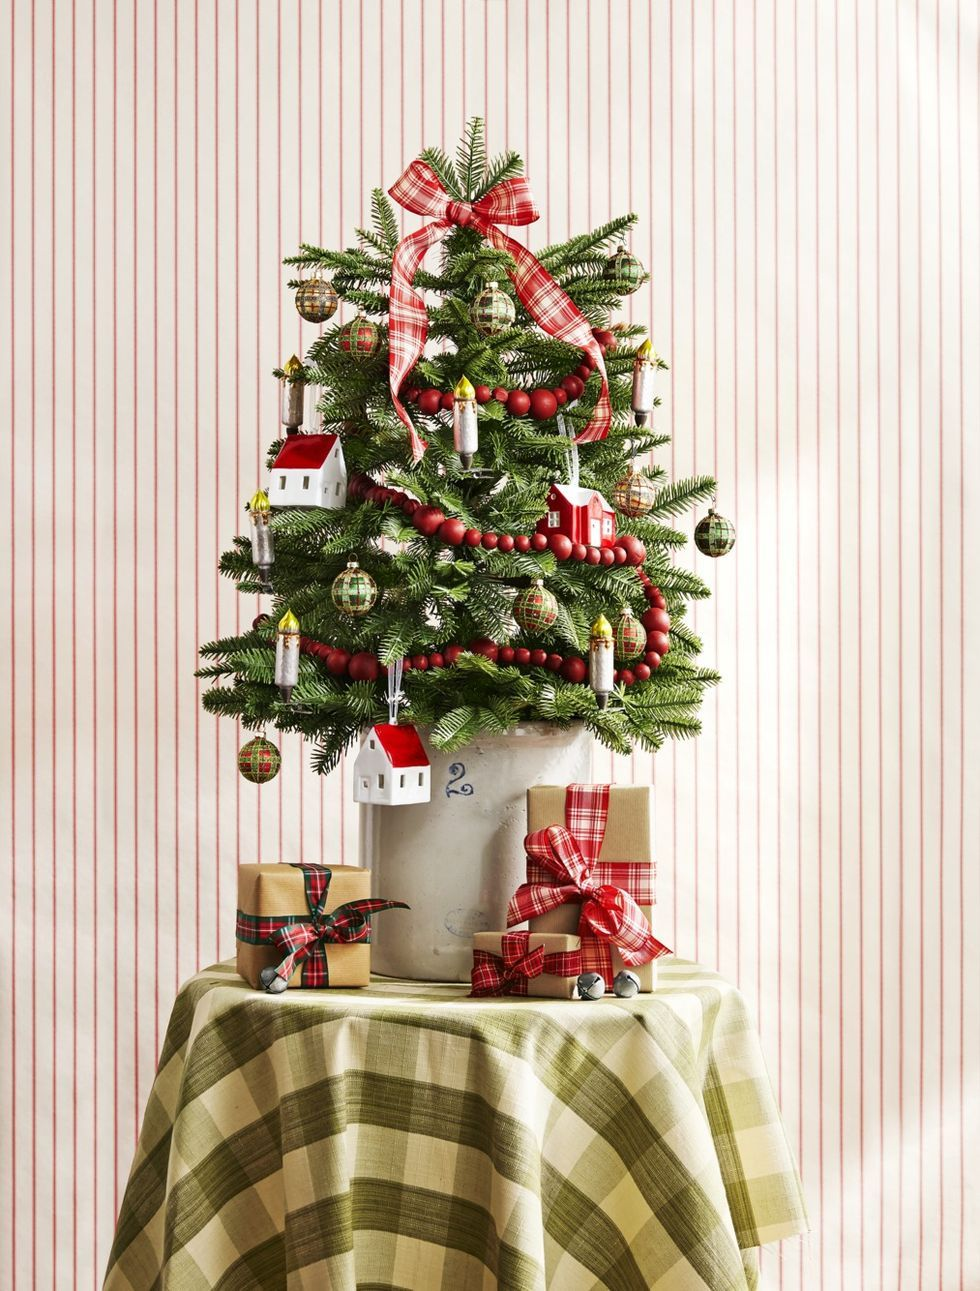 Upgrade Your Christmas Tree Game With These Decorating Ideas Christmas Tree Decorations Small Christmas Trees Small Christmas Trees Decorated